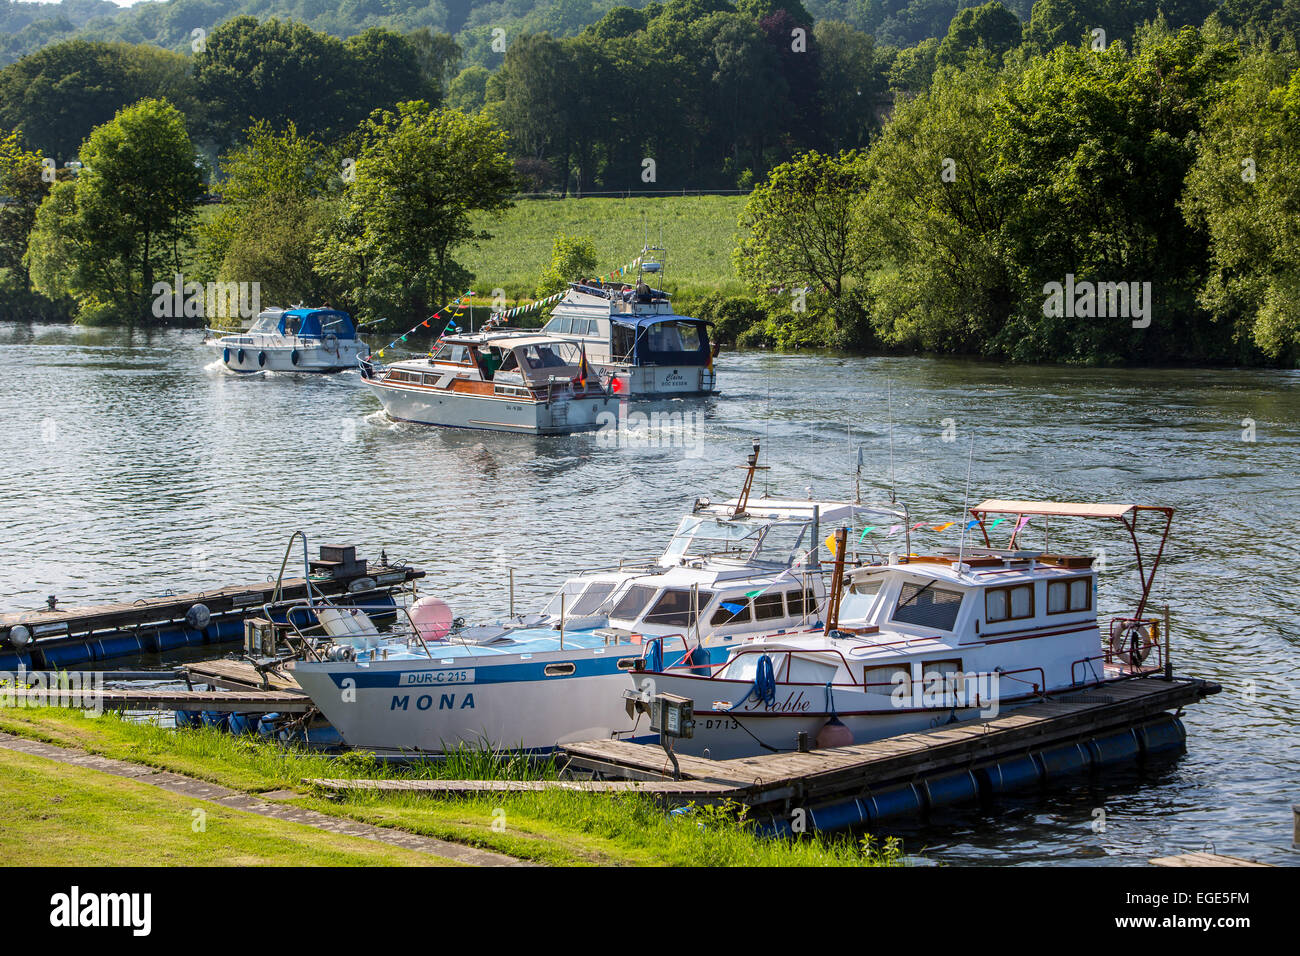 Motor yachts on river Ruhr, Essen, Germany - Stock Image